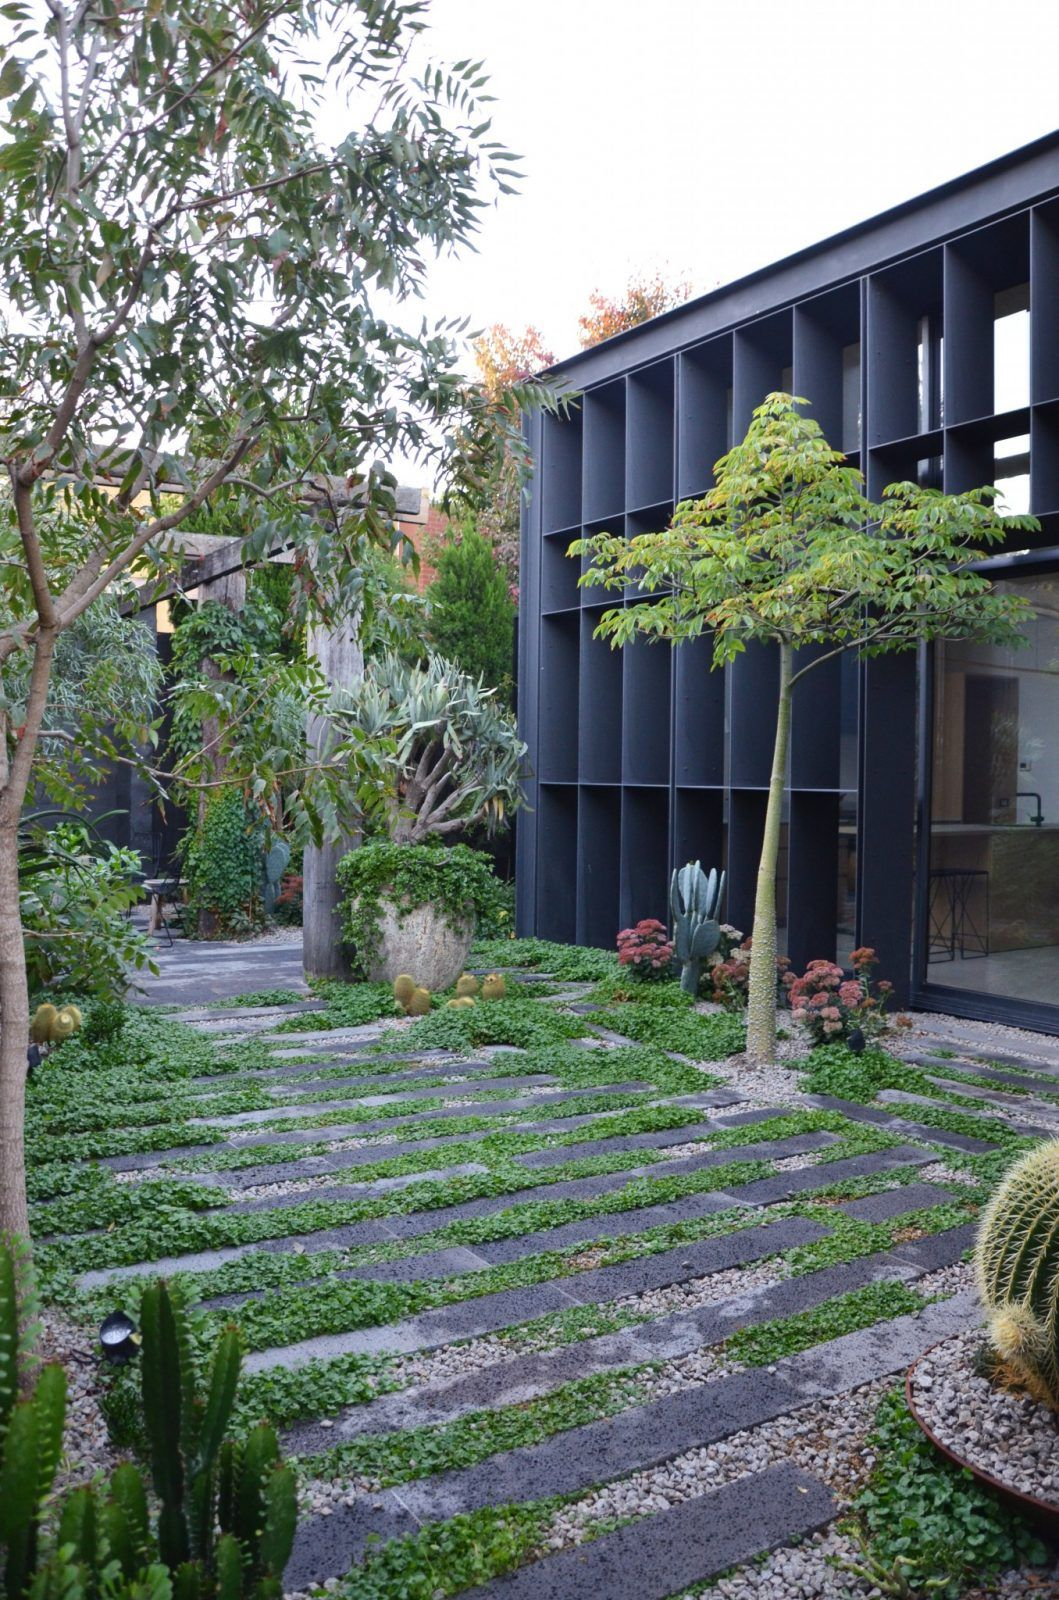 Baffle House, St. Kilda (architecture: Clare Cousins